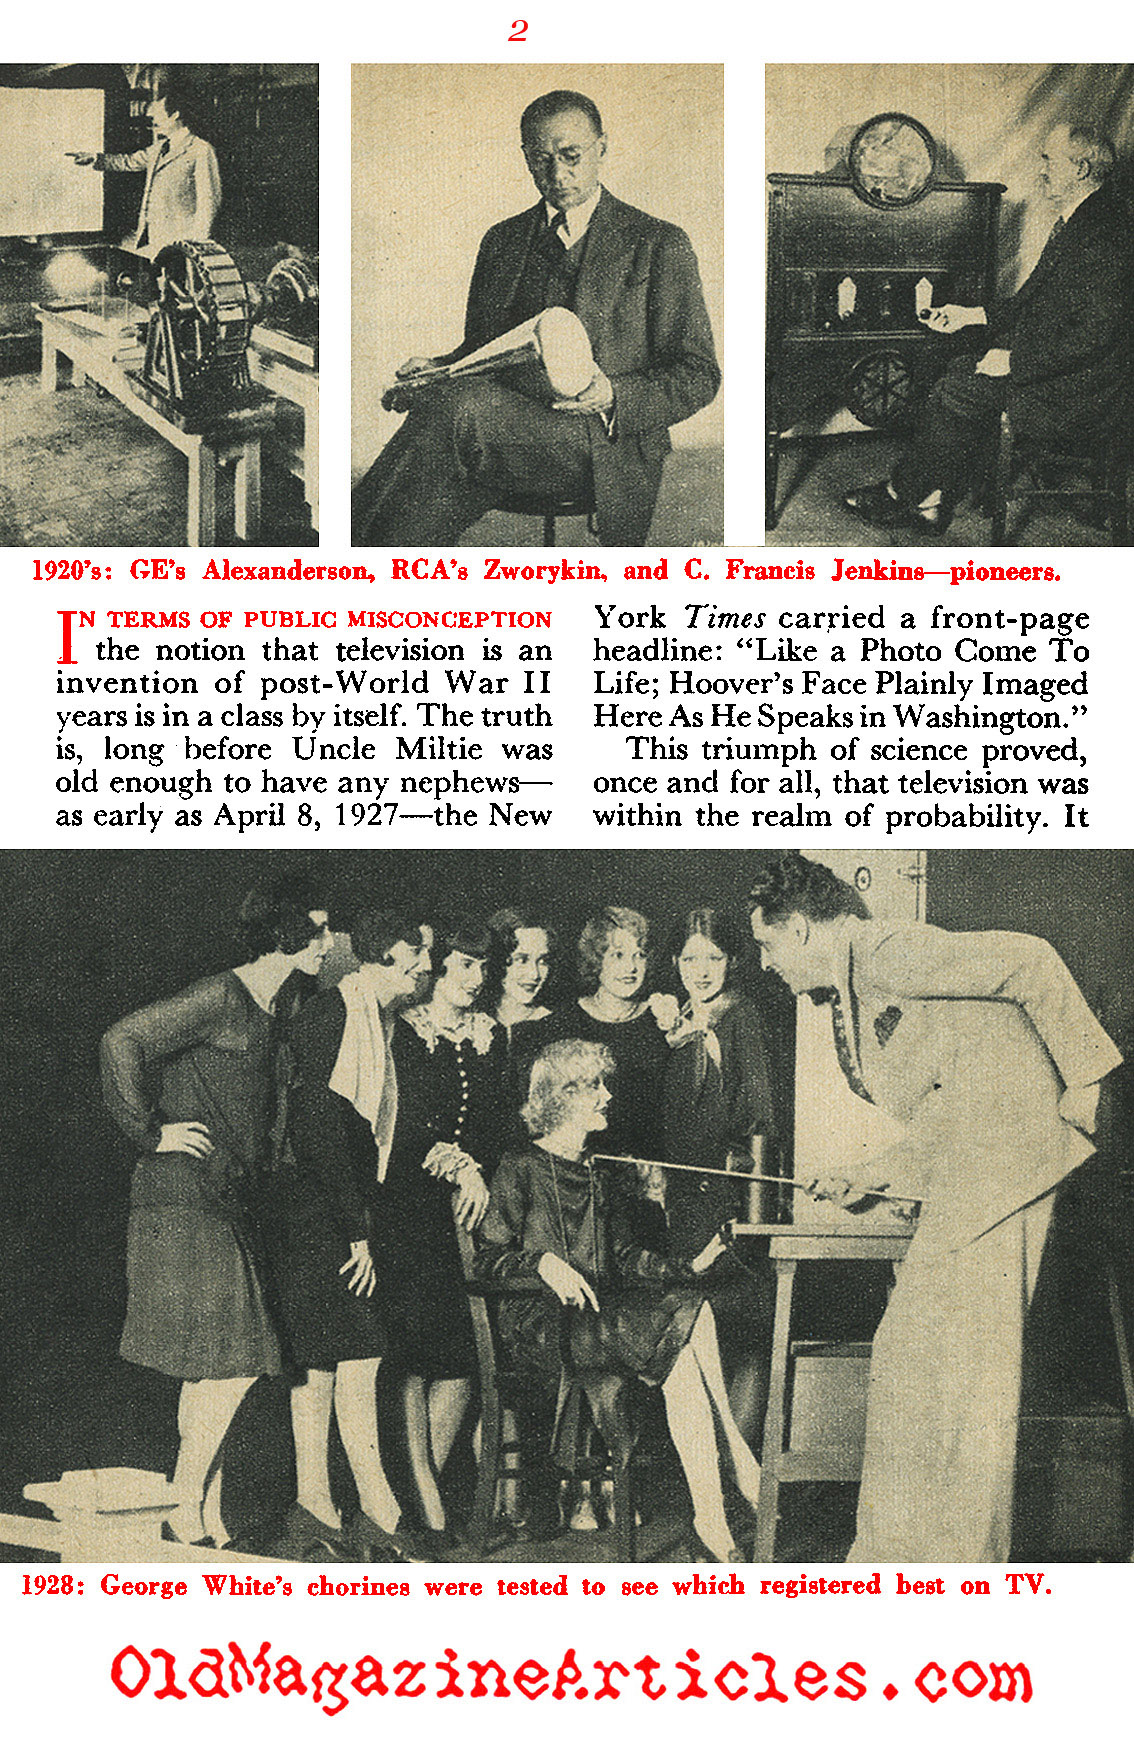 The First Thirty Years of Television (Coronet Magazine, 1954)